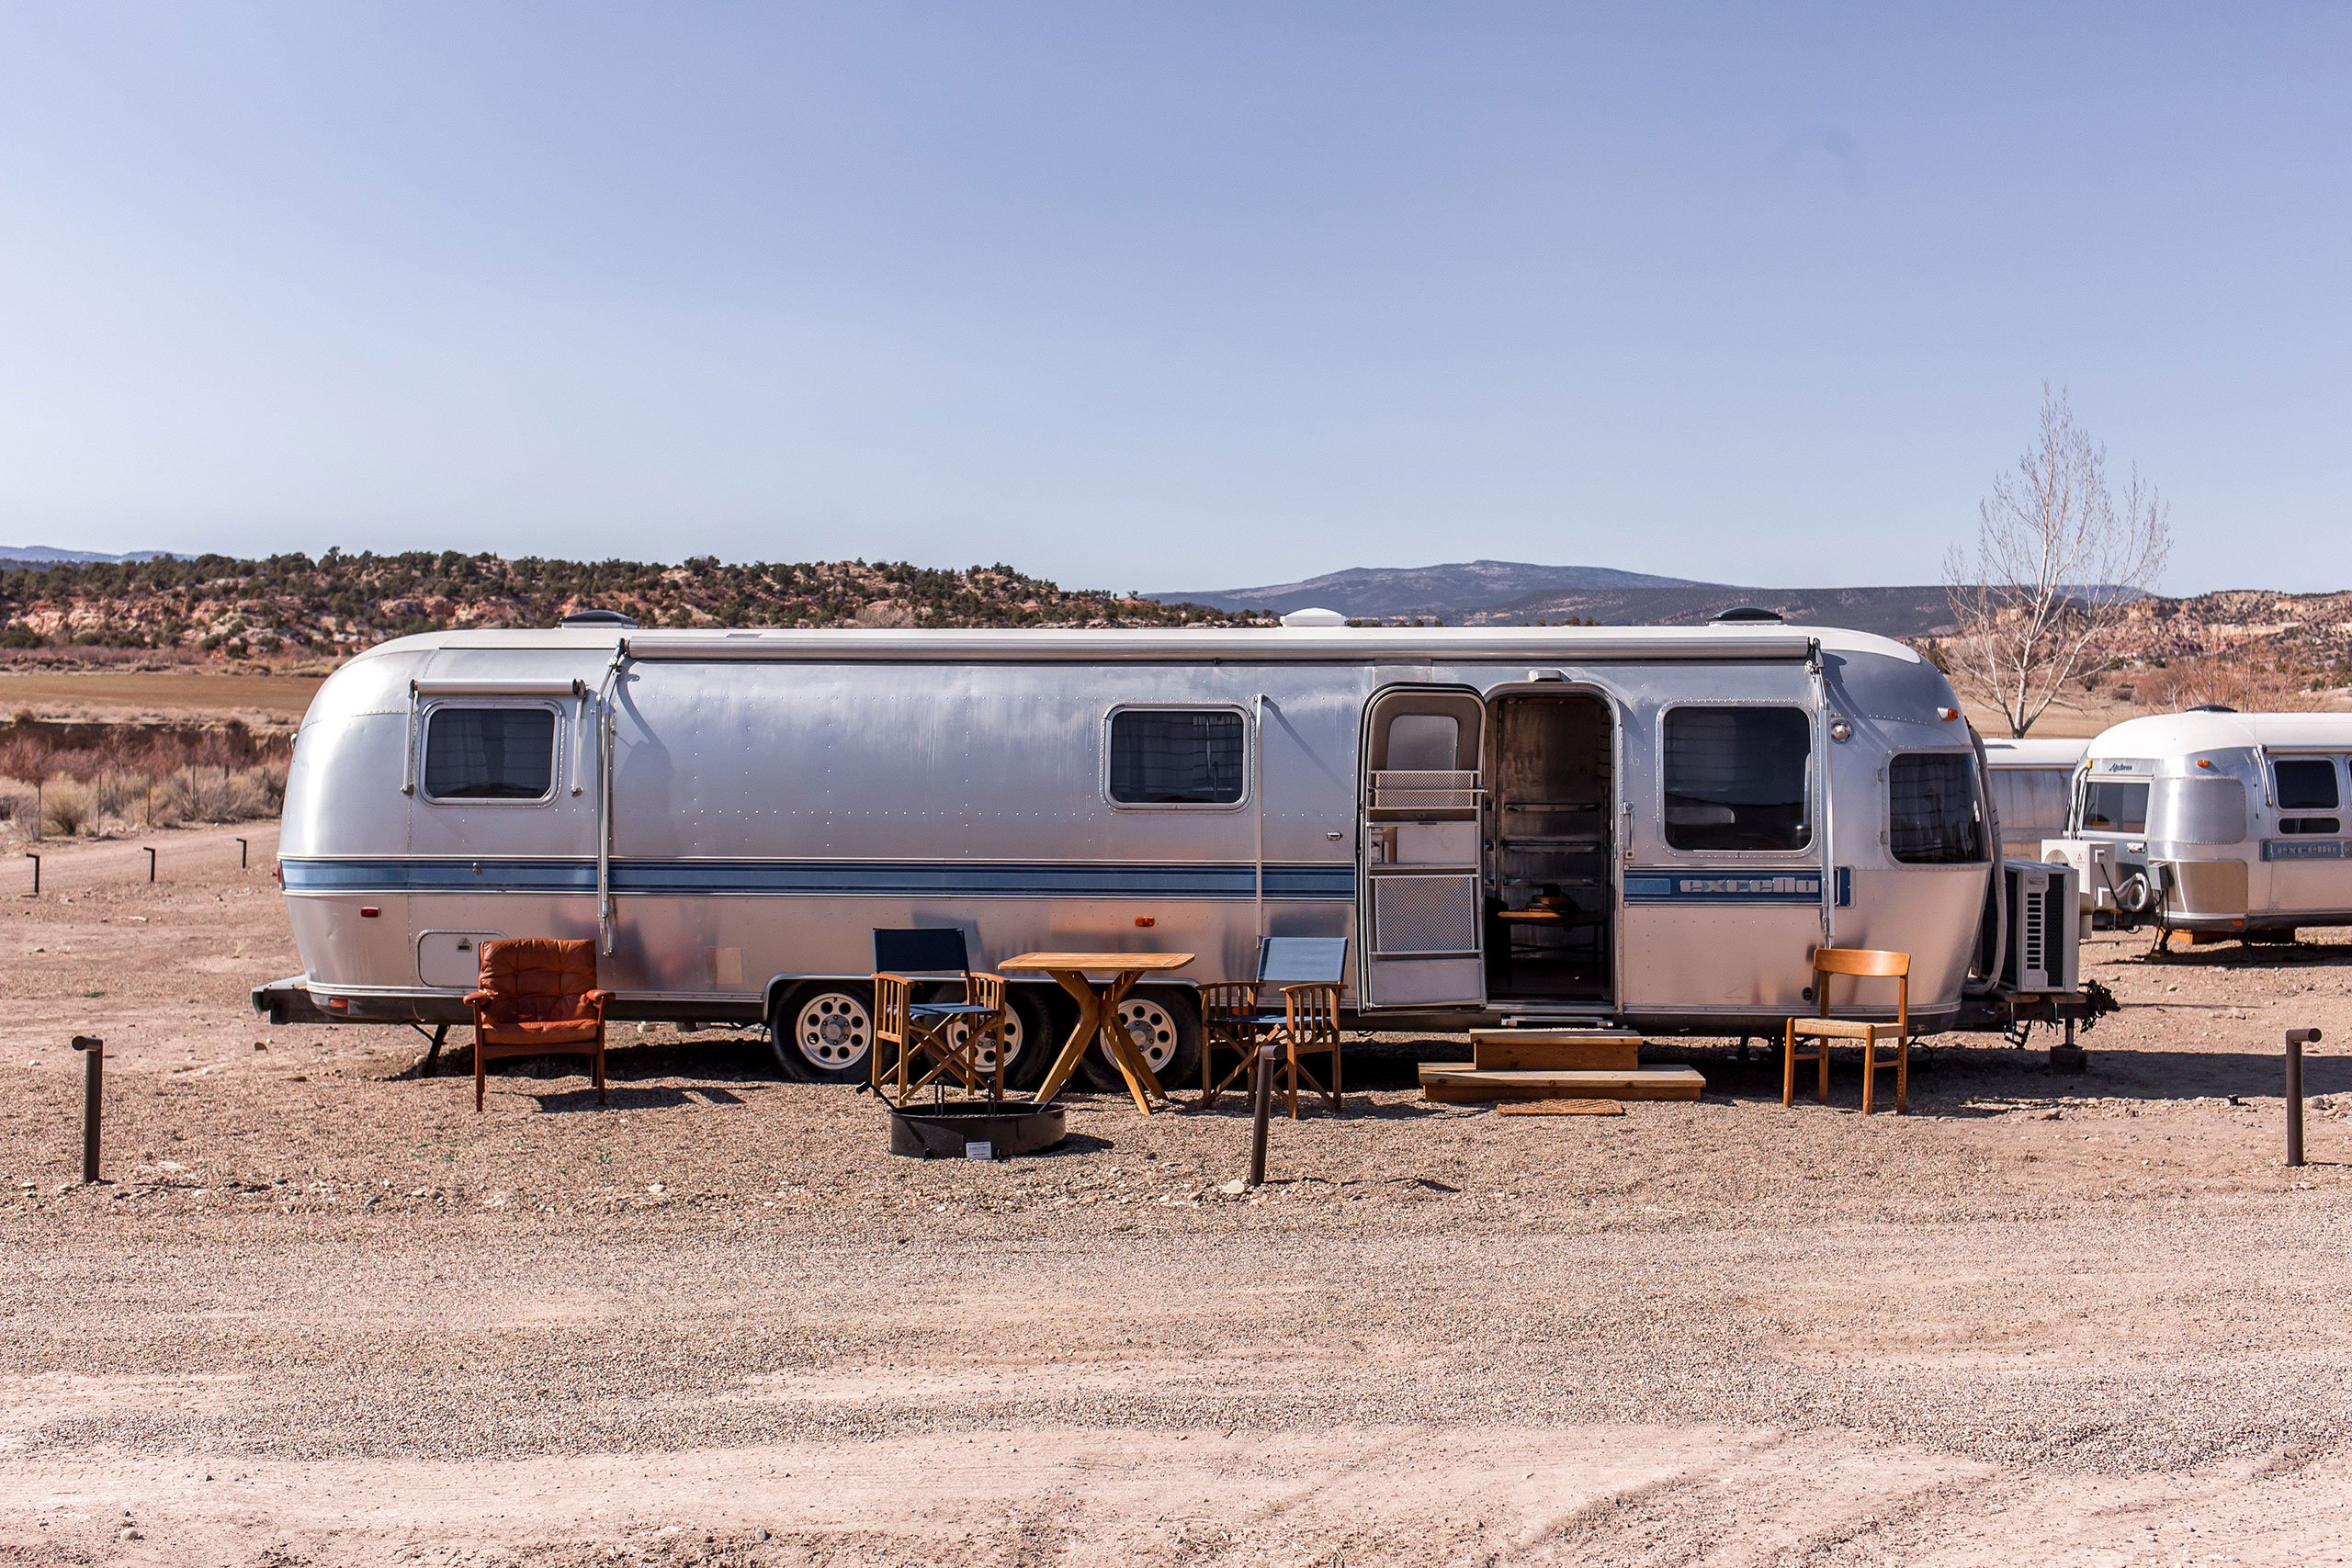 Airstream exterior.Photography by Aleks Danielle Butman.